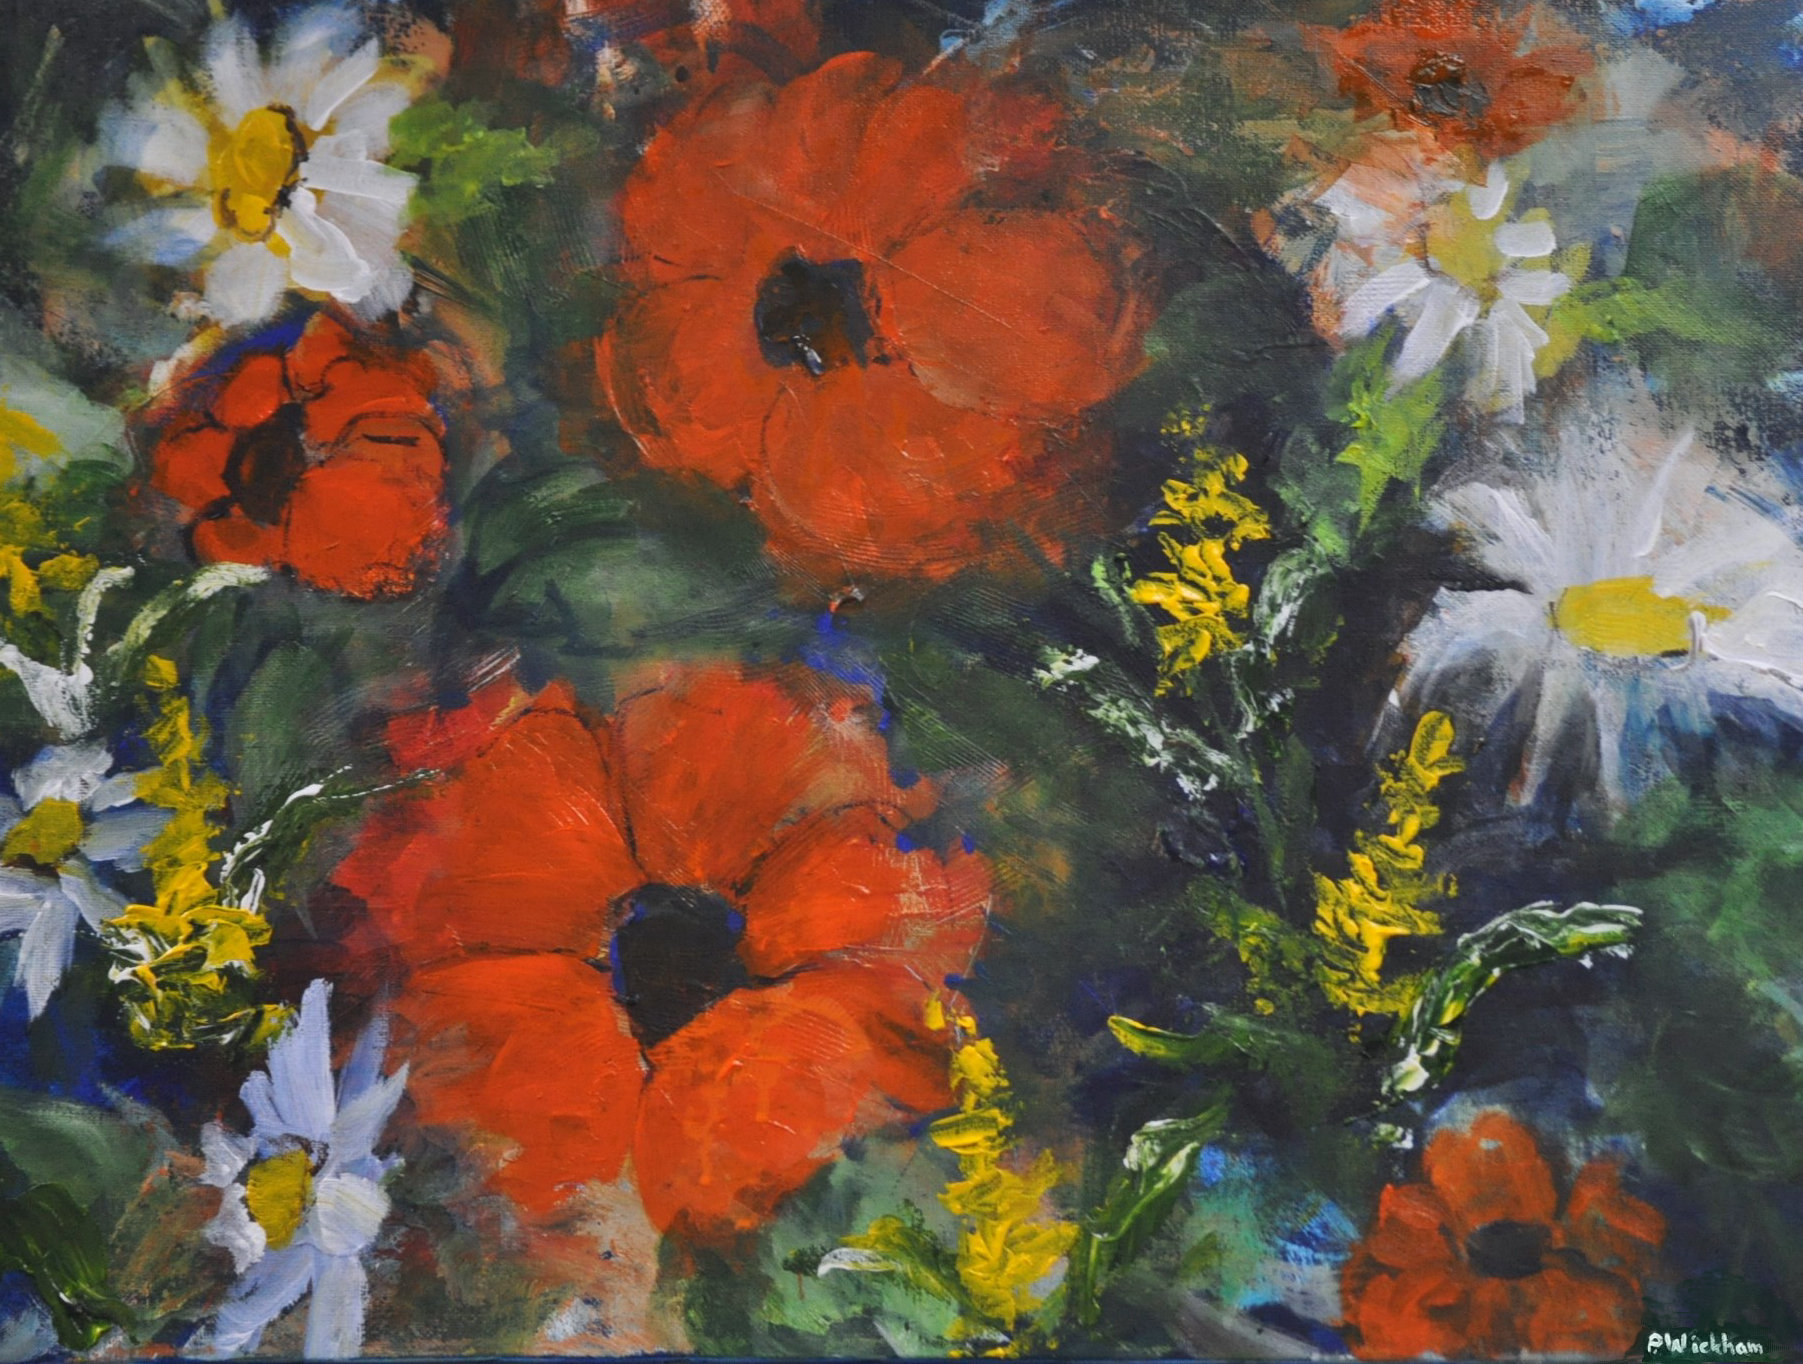 Poppies and Daisies by Peggy Wickham (MG: January 2016)